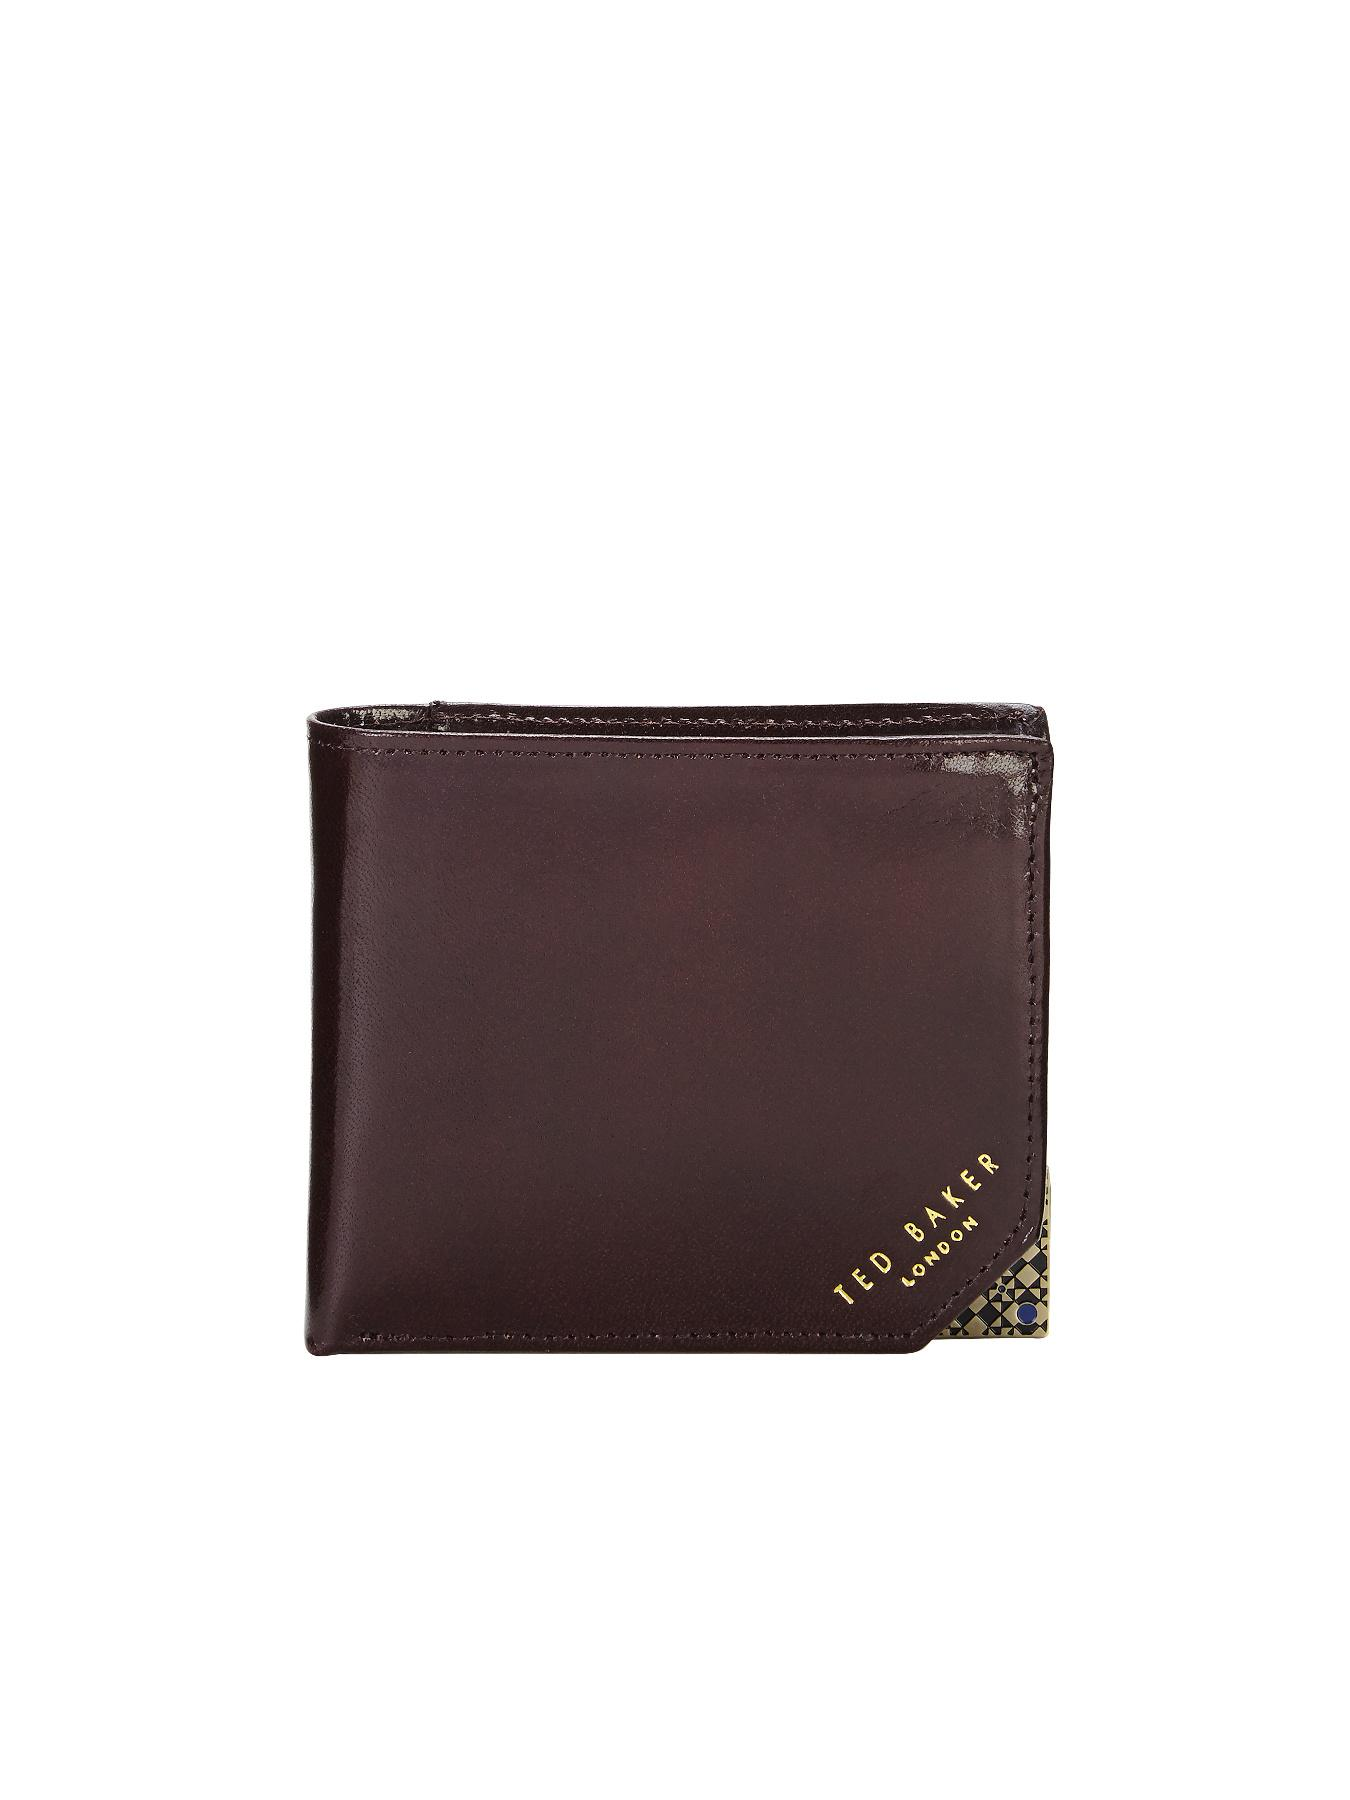 Ted Baker Leather Wallet - Chocolate - Chocolate, Chocolate